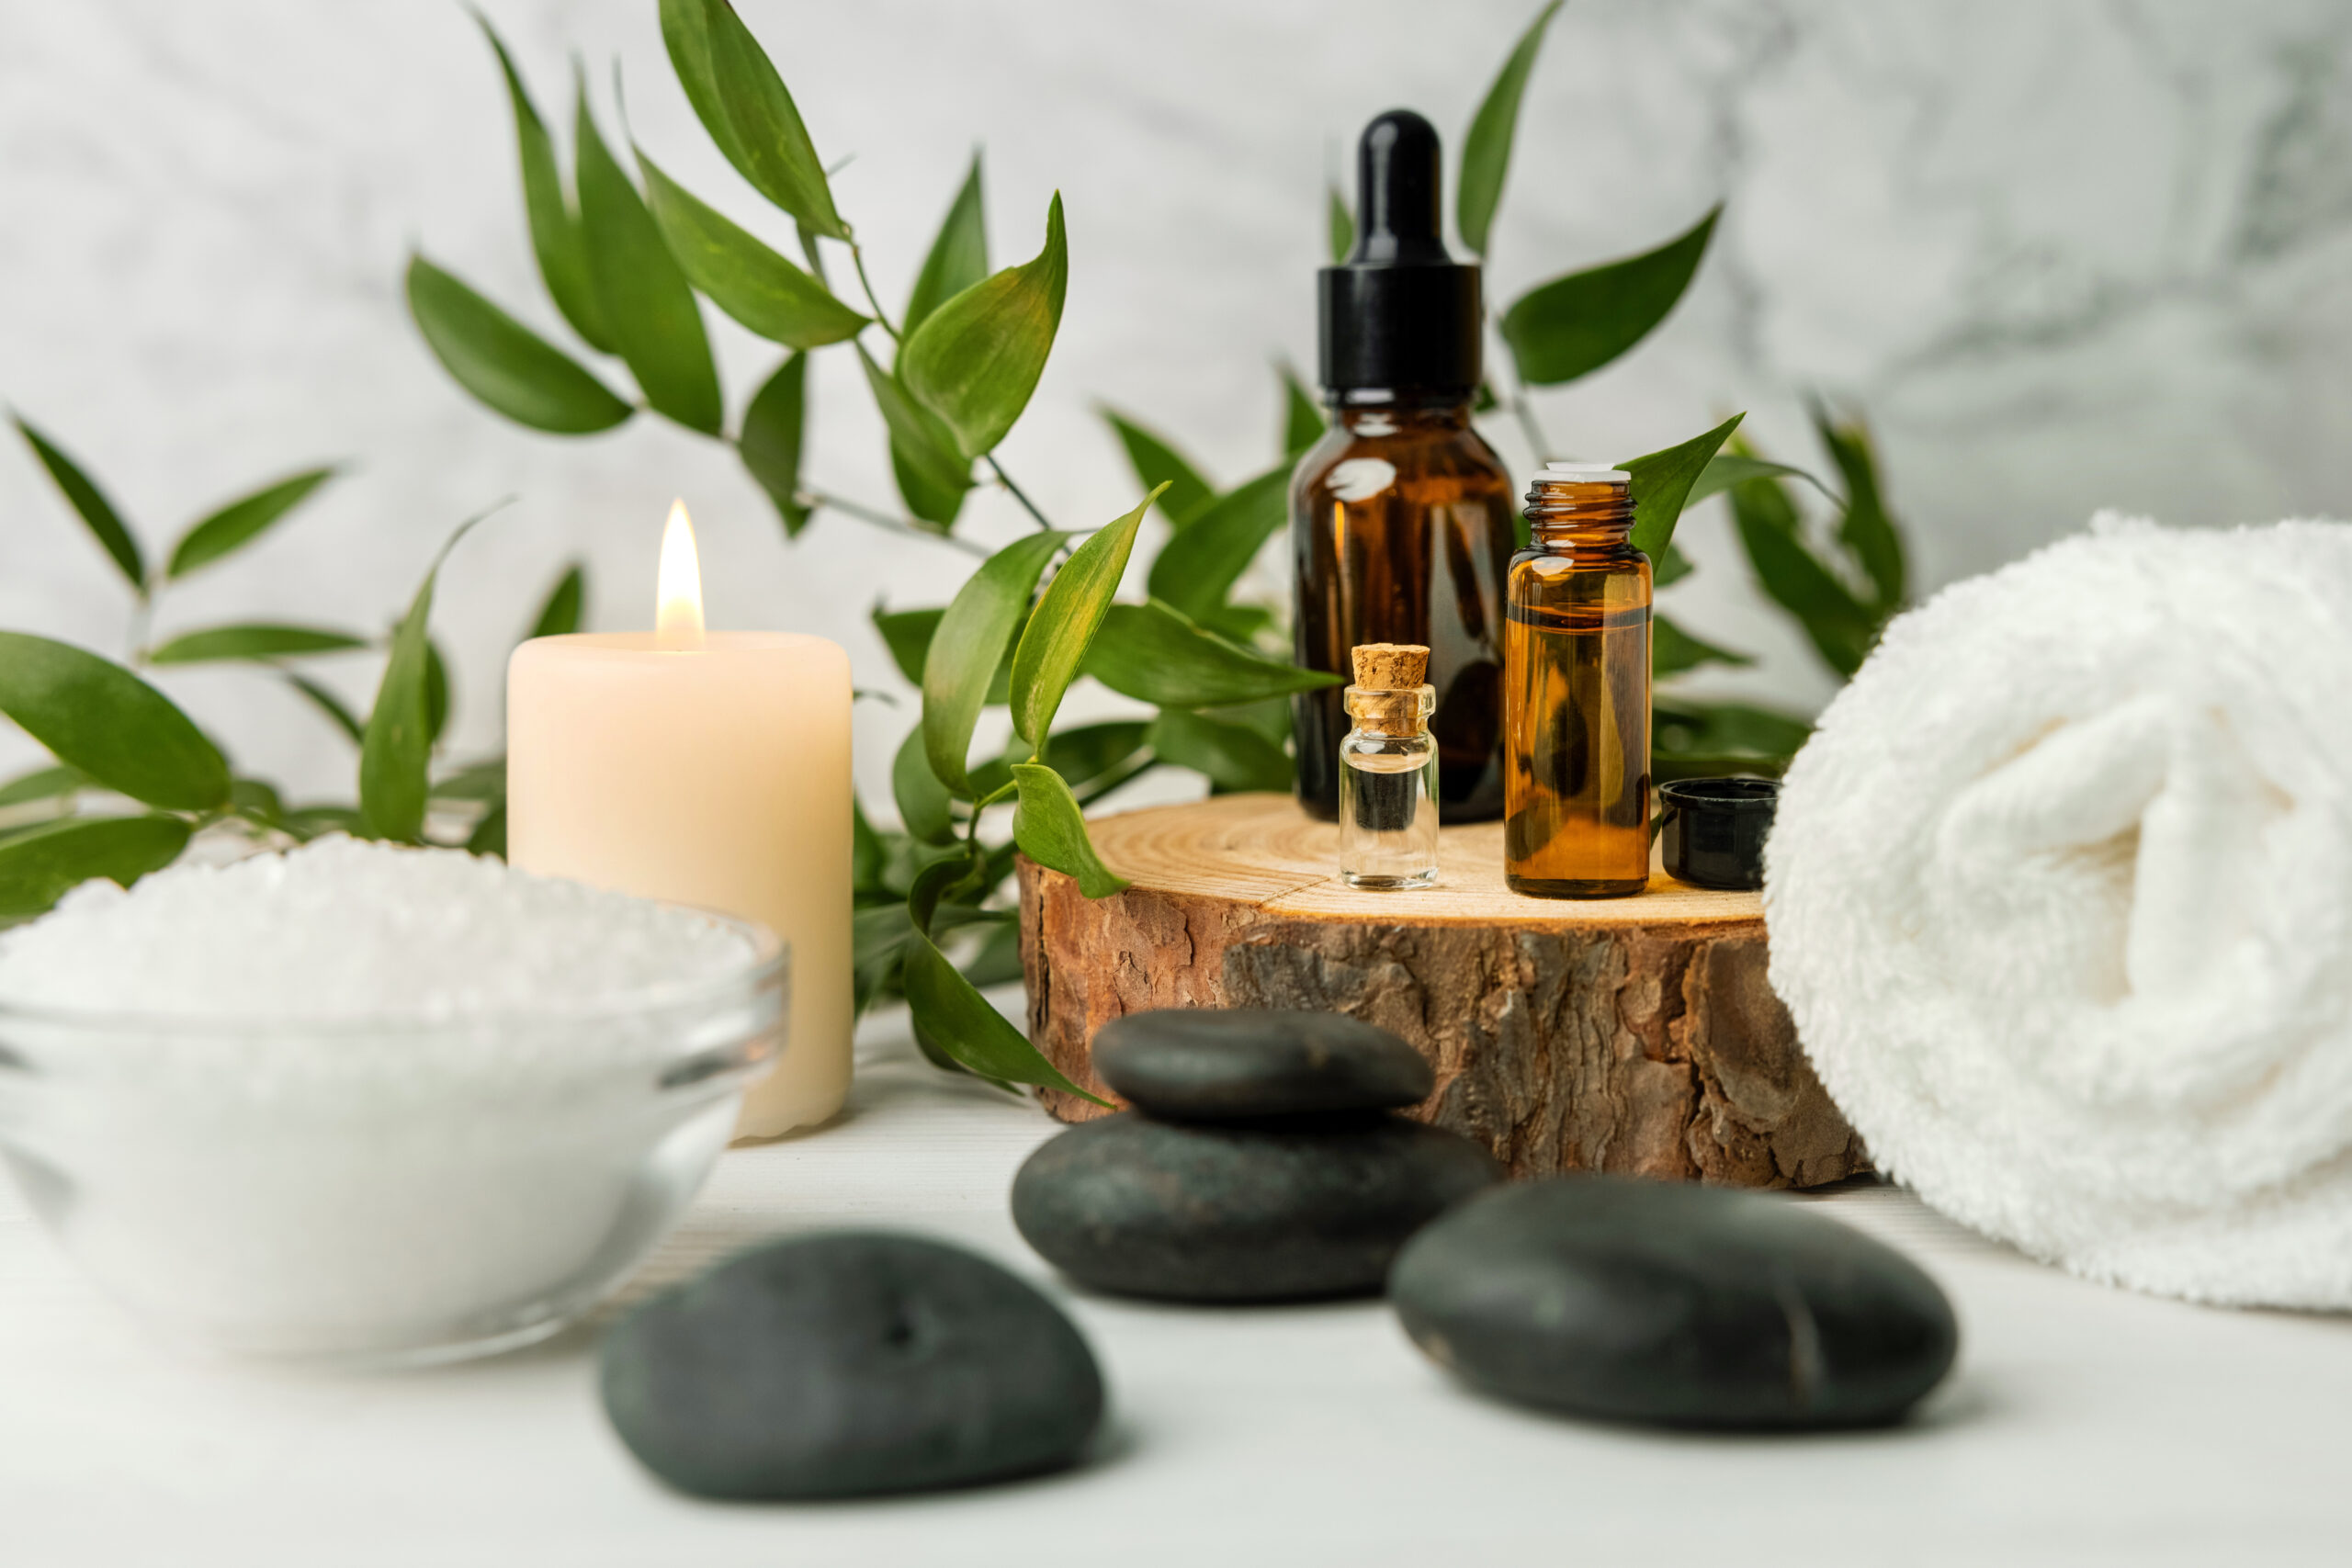 Beauty treatment items for spa on wooden table